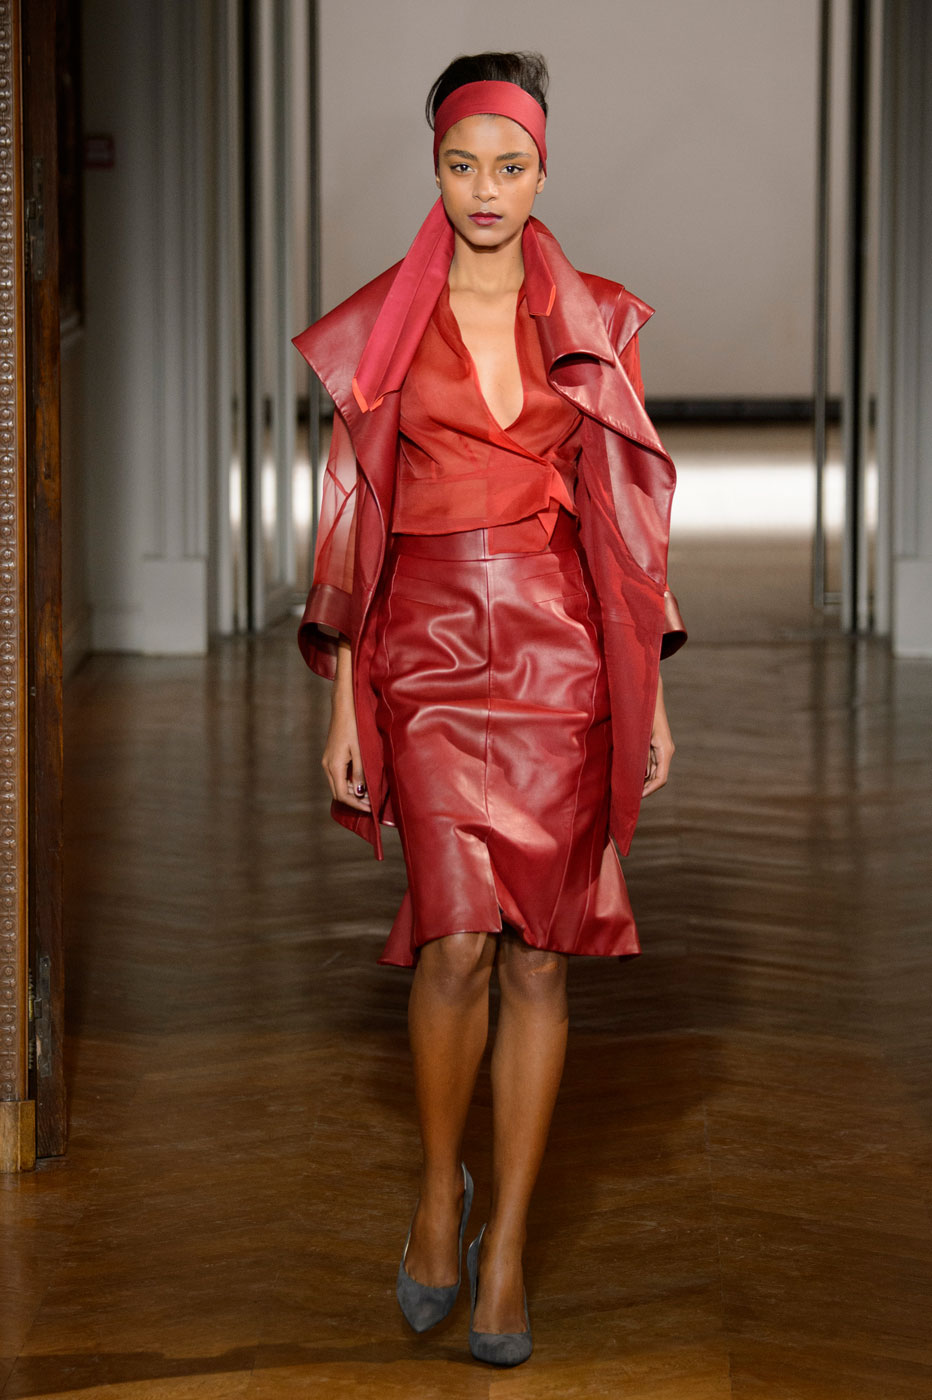 Gustavolins-Prive-fashion-runway-show-haute-couture-paris-spring-2015-the-impression-15